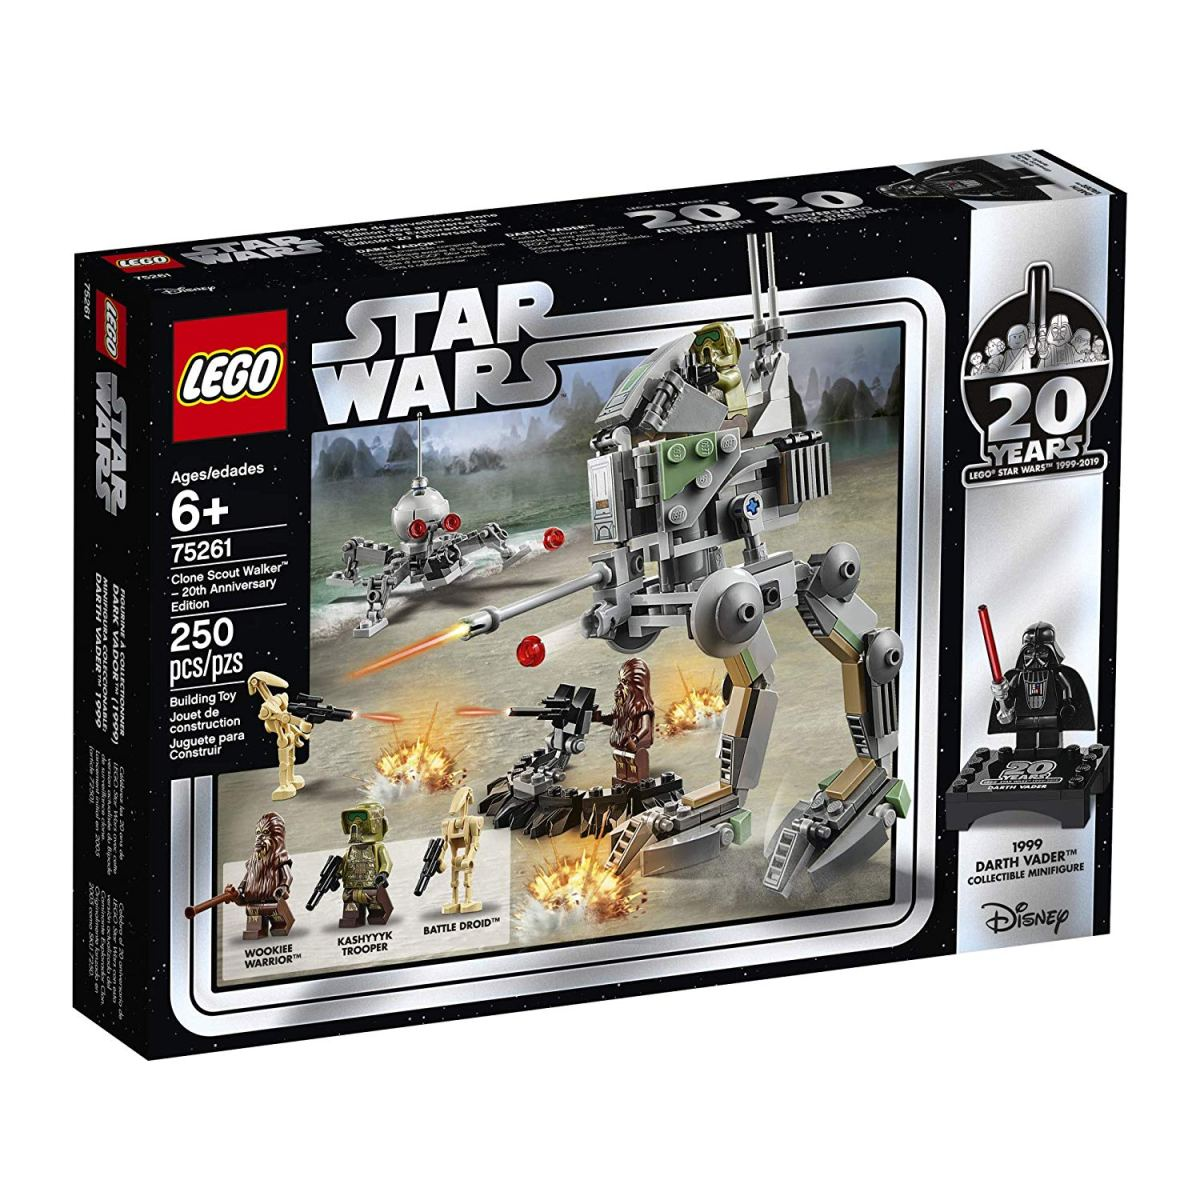 Amazon Sale Discounts LEGO Star Wars Clone Scout Walker (75261) 20th Anniversary Edition